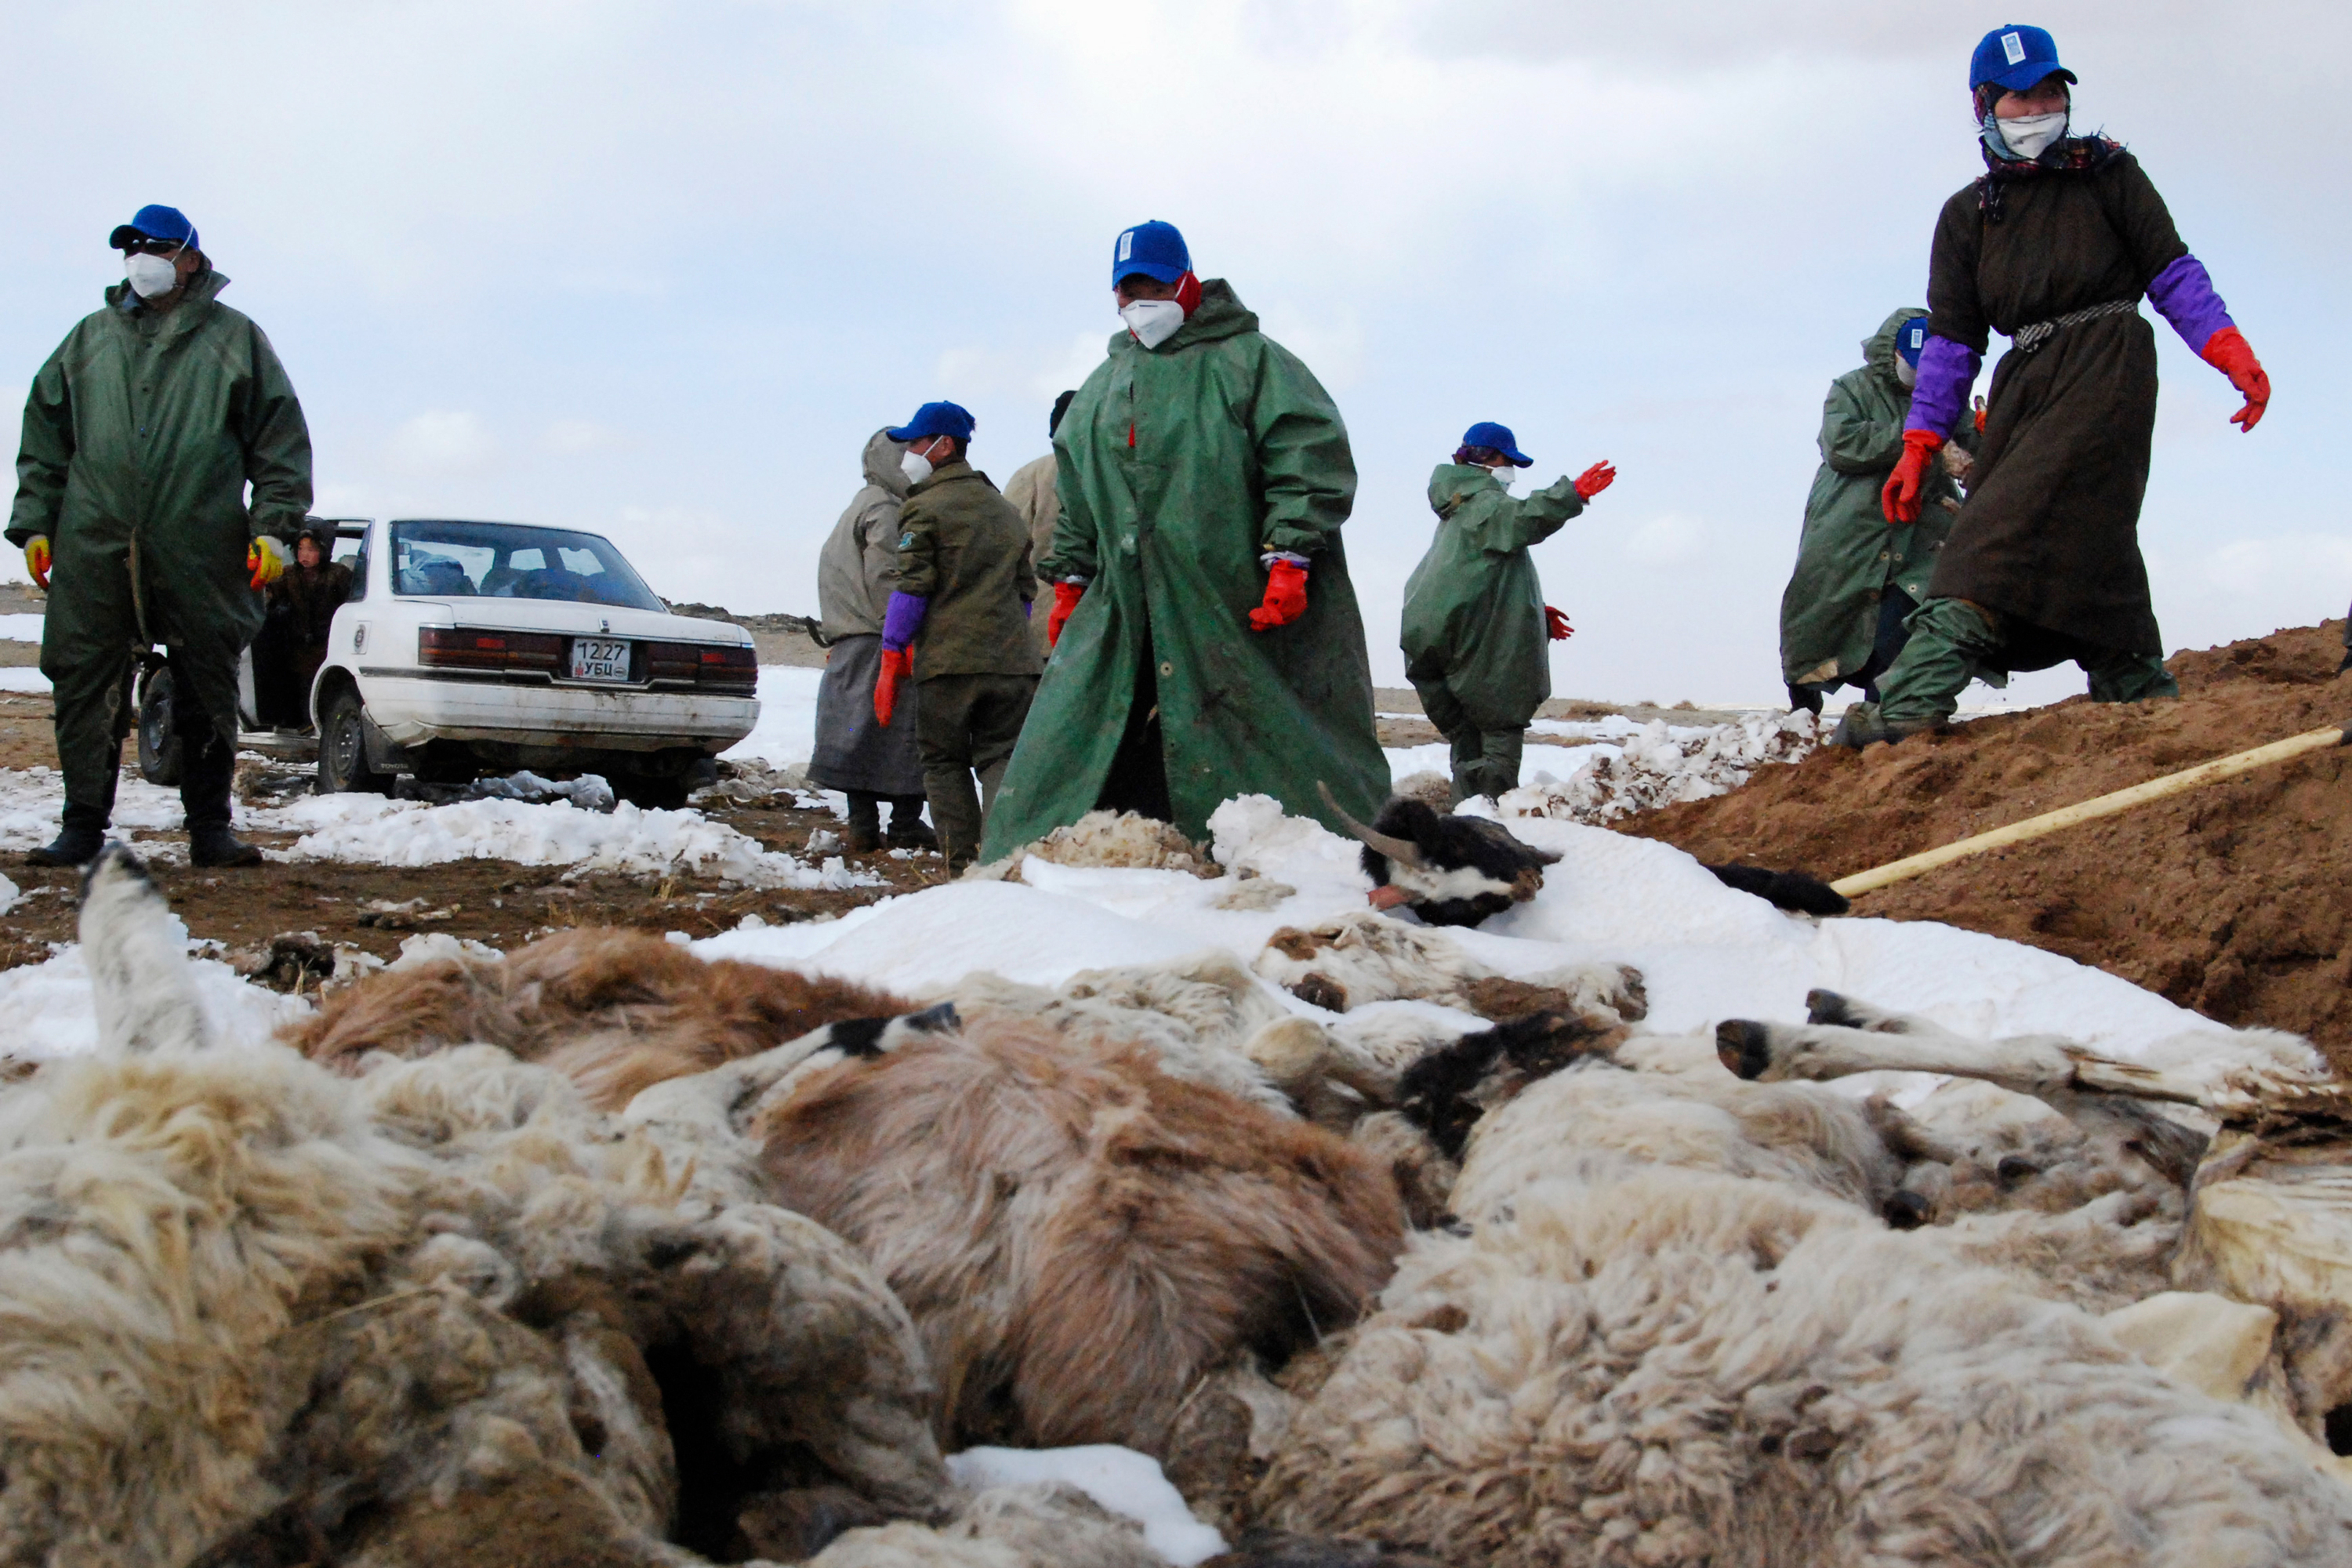 The Deadly Winters That Have Transformed Life For Herders In Mongolia